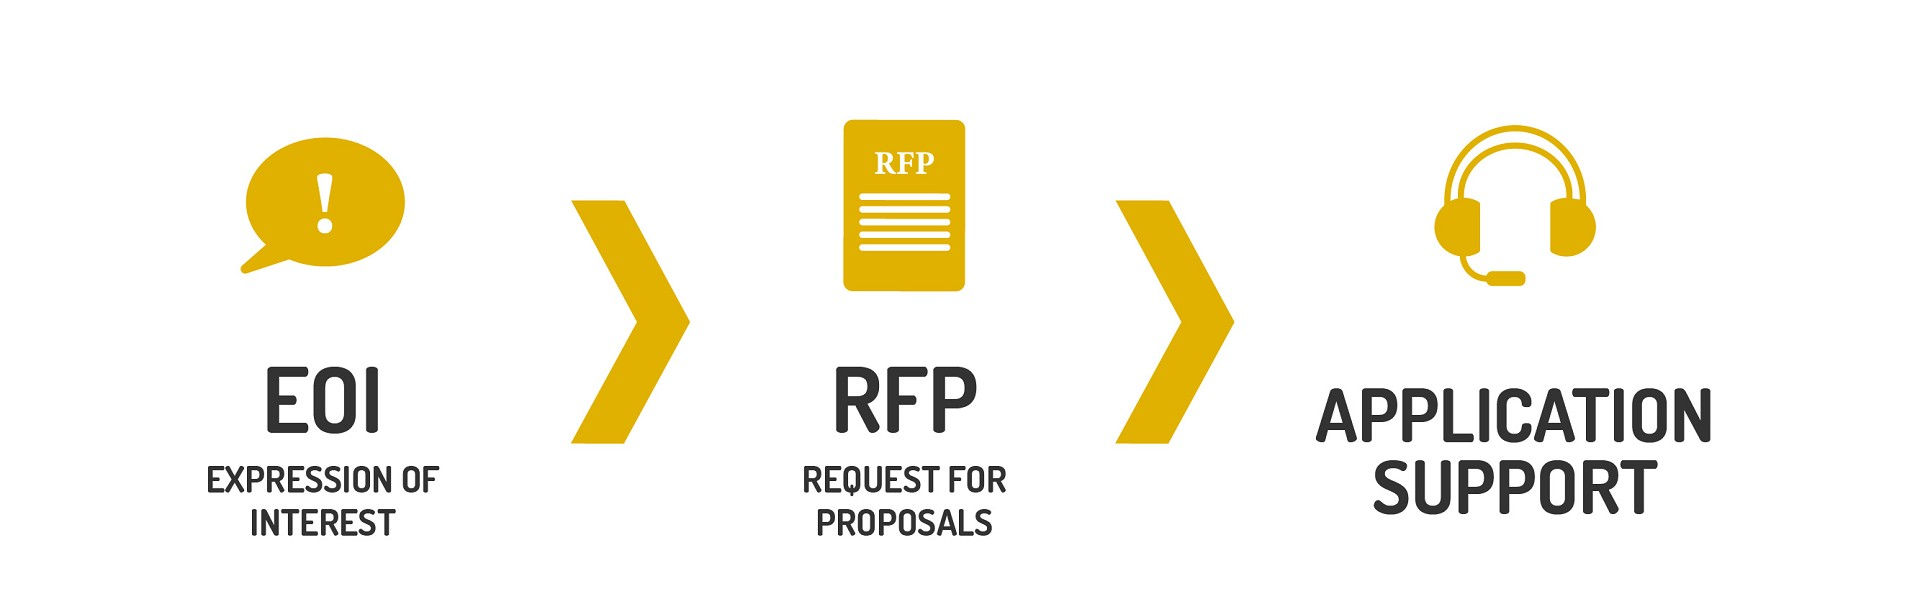 eoi-rfp-appsupport-graphic-01